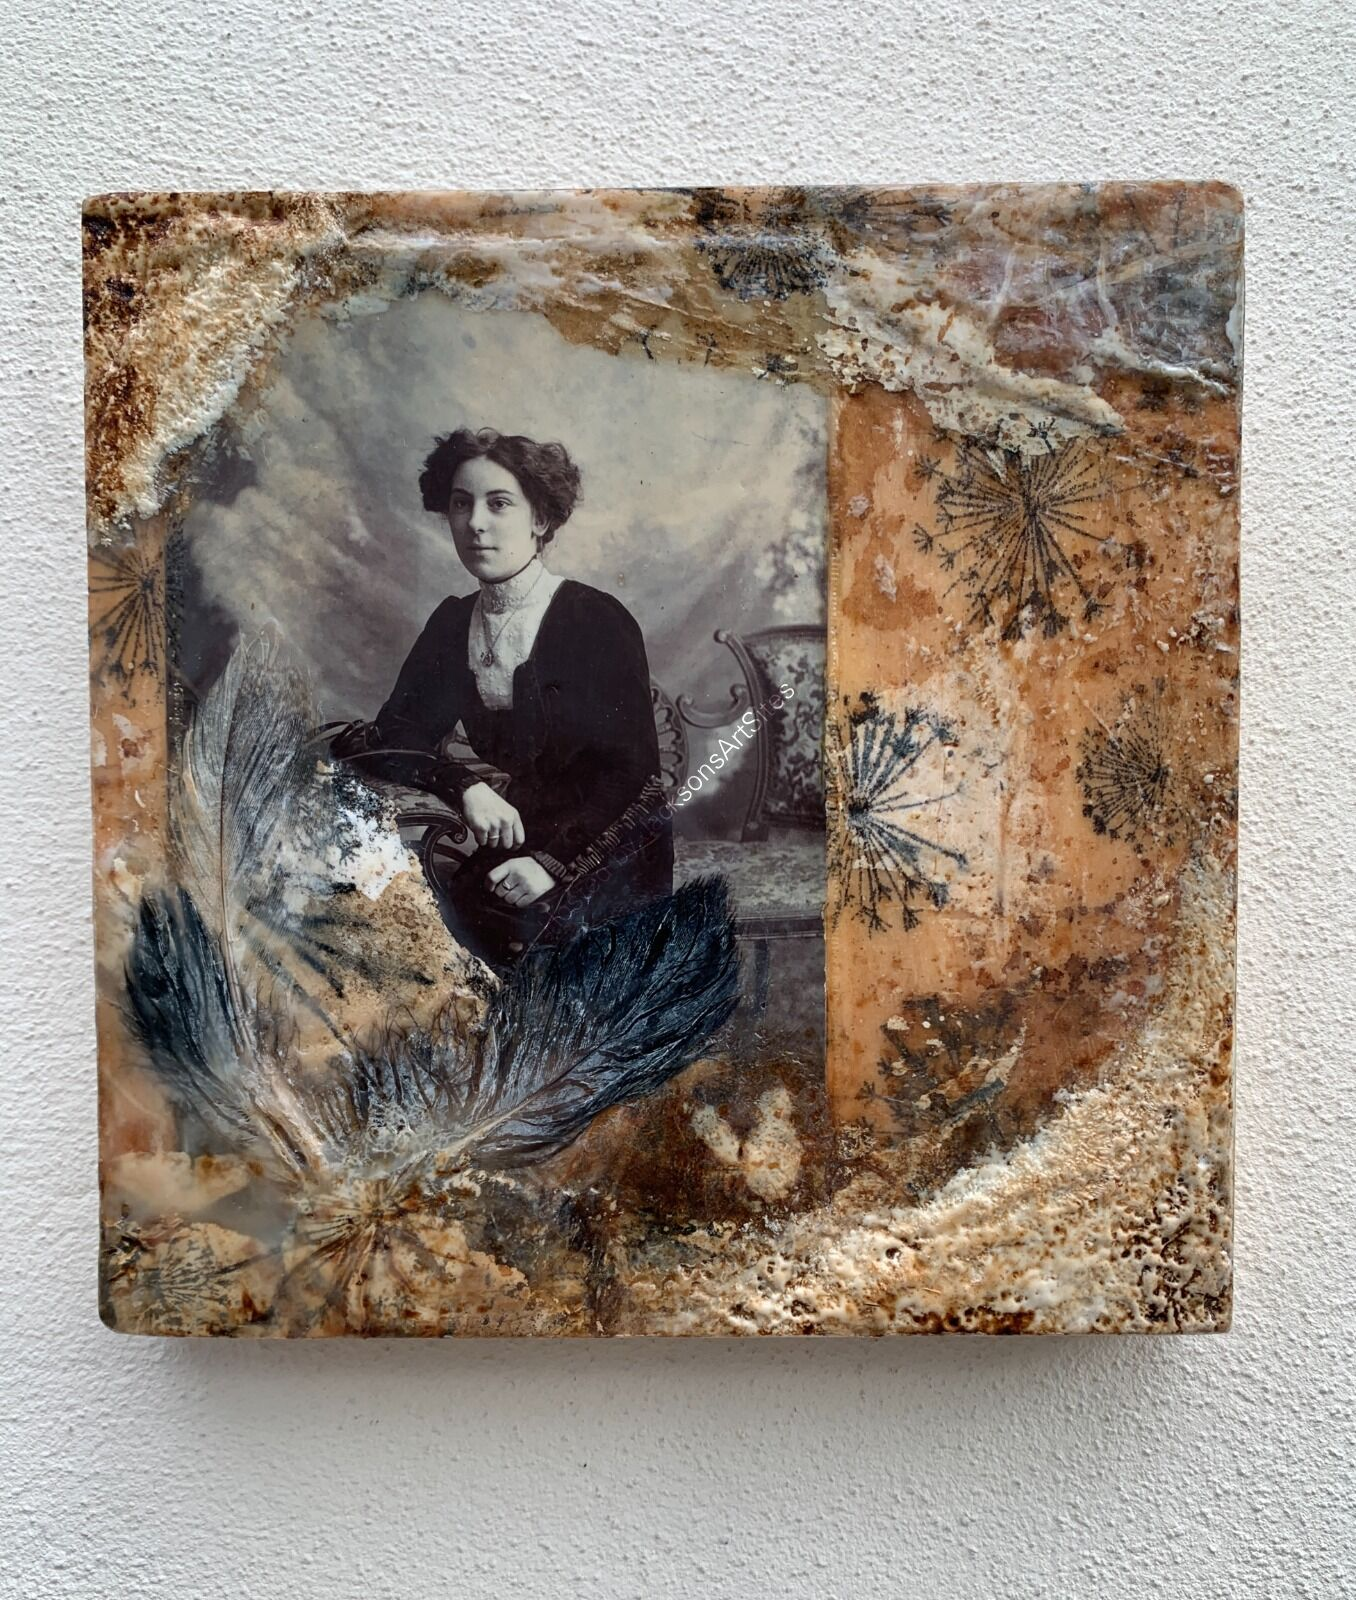 Lady In Black - Encaustic Wax & Tea Bags On Wood Board